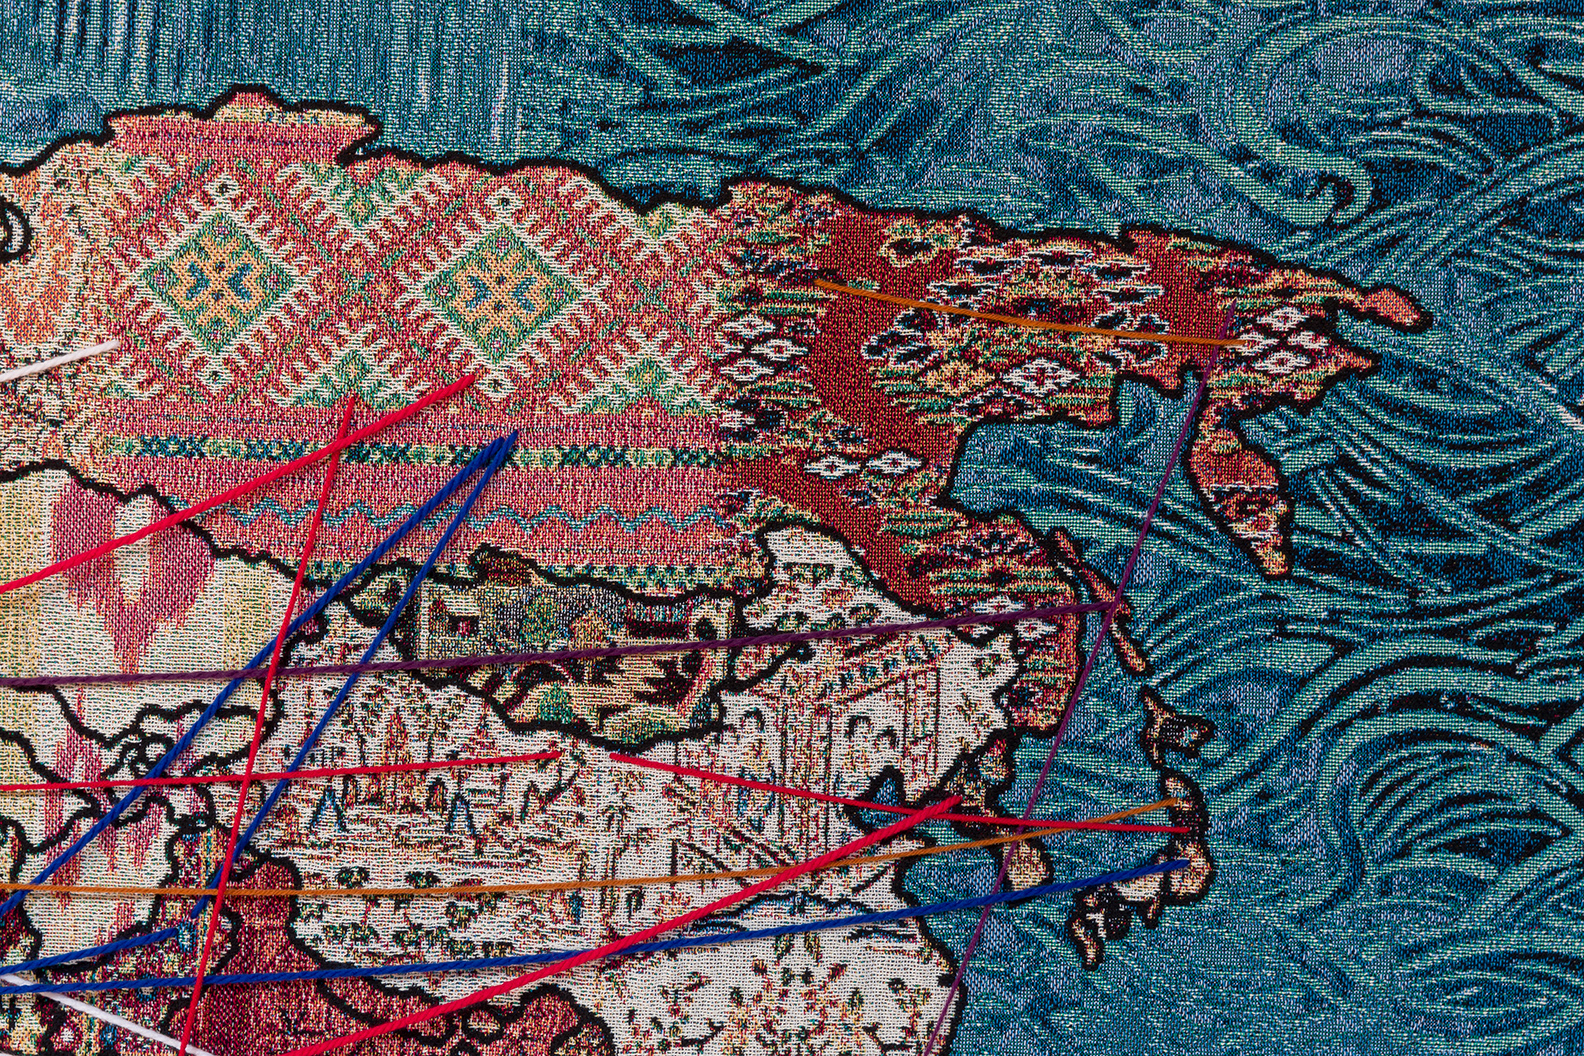 """Detail of """"Our Stories of Migration"""" digital tapestry  Photo credit: Etienne Frossard"""